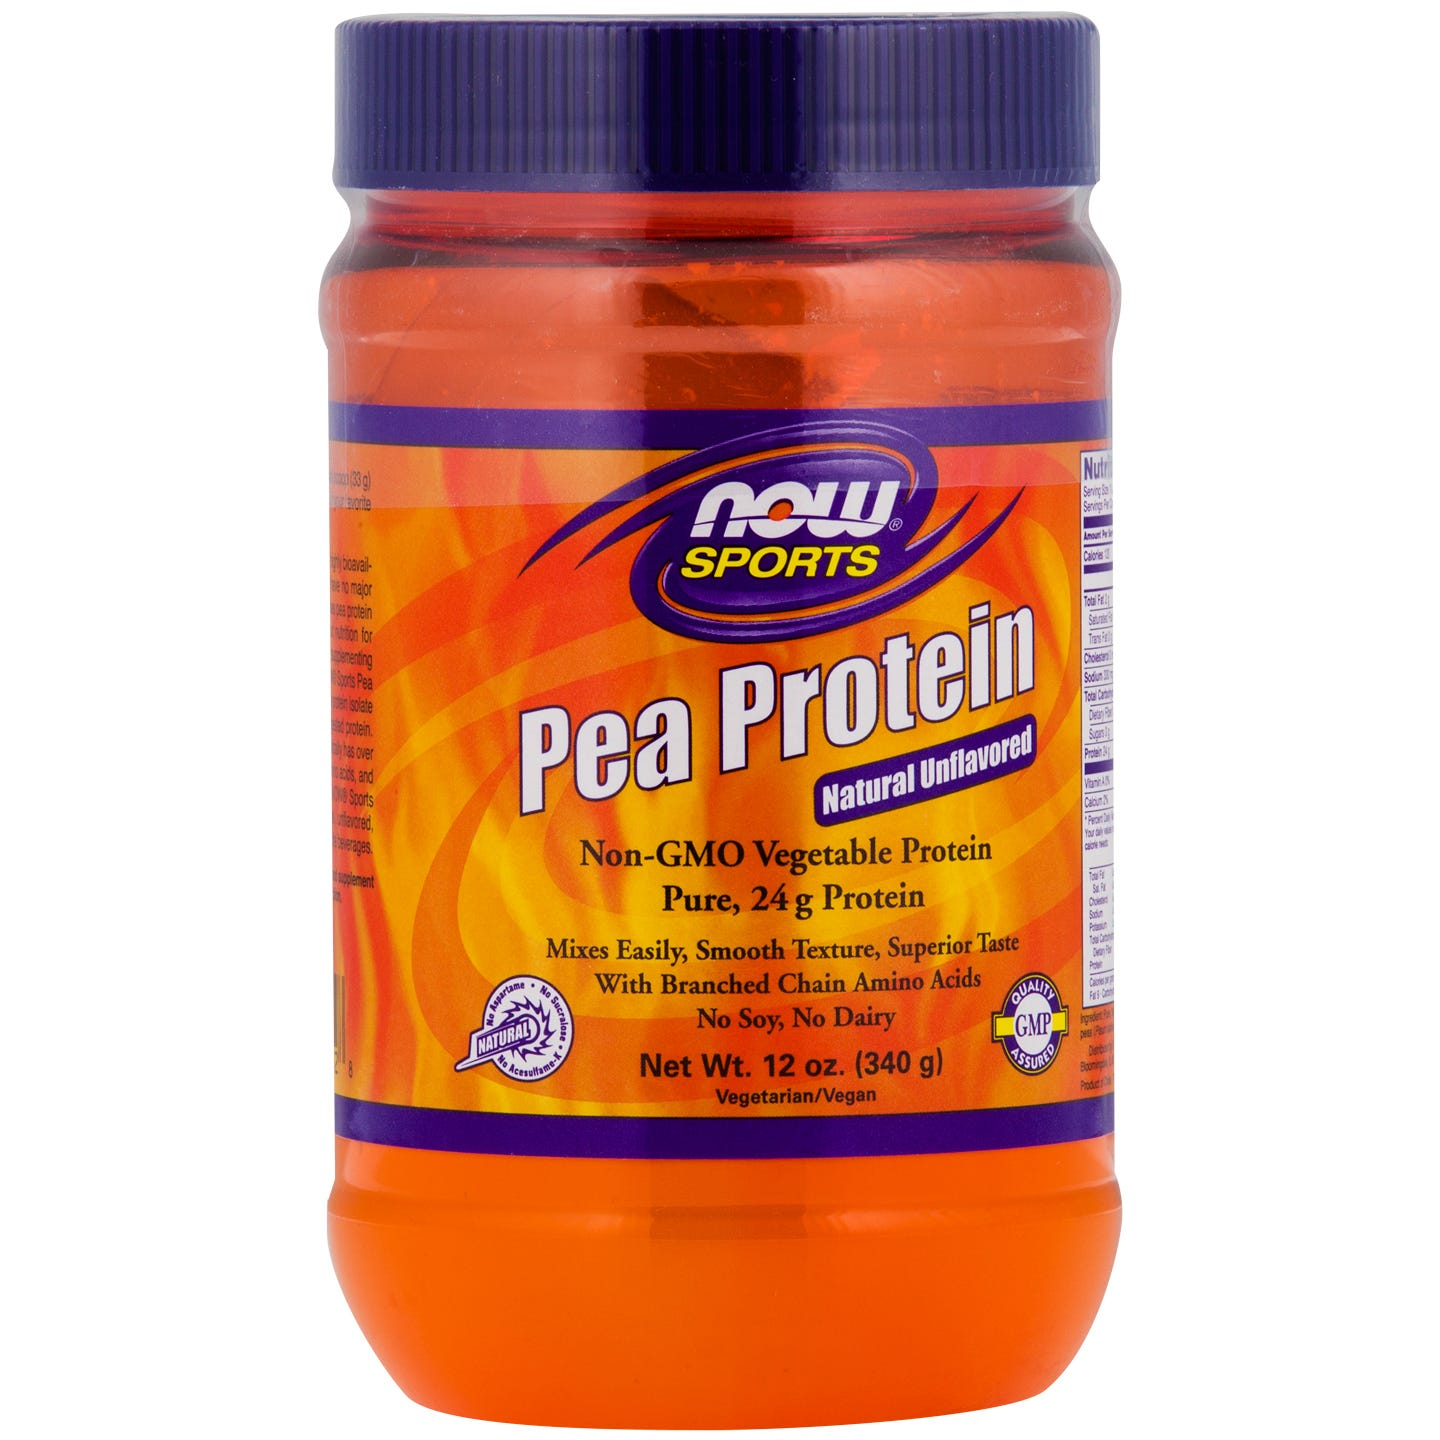 Sports Pea Protein Unflavored 12oz, NOW Foods - Rapid Diet Weight Loss Products Shop